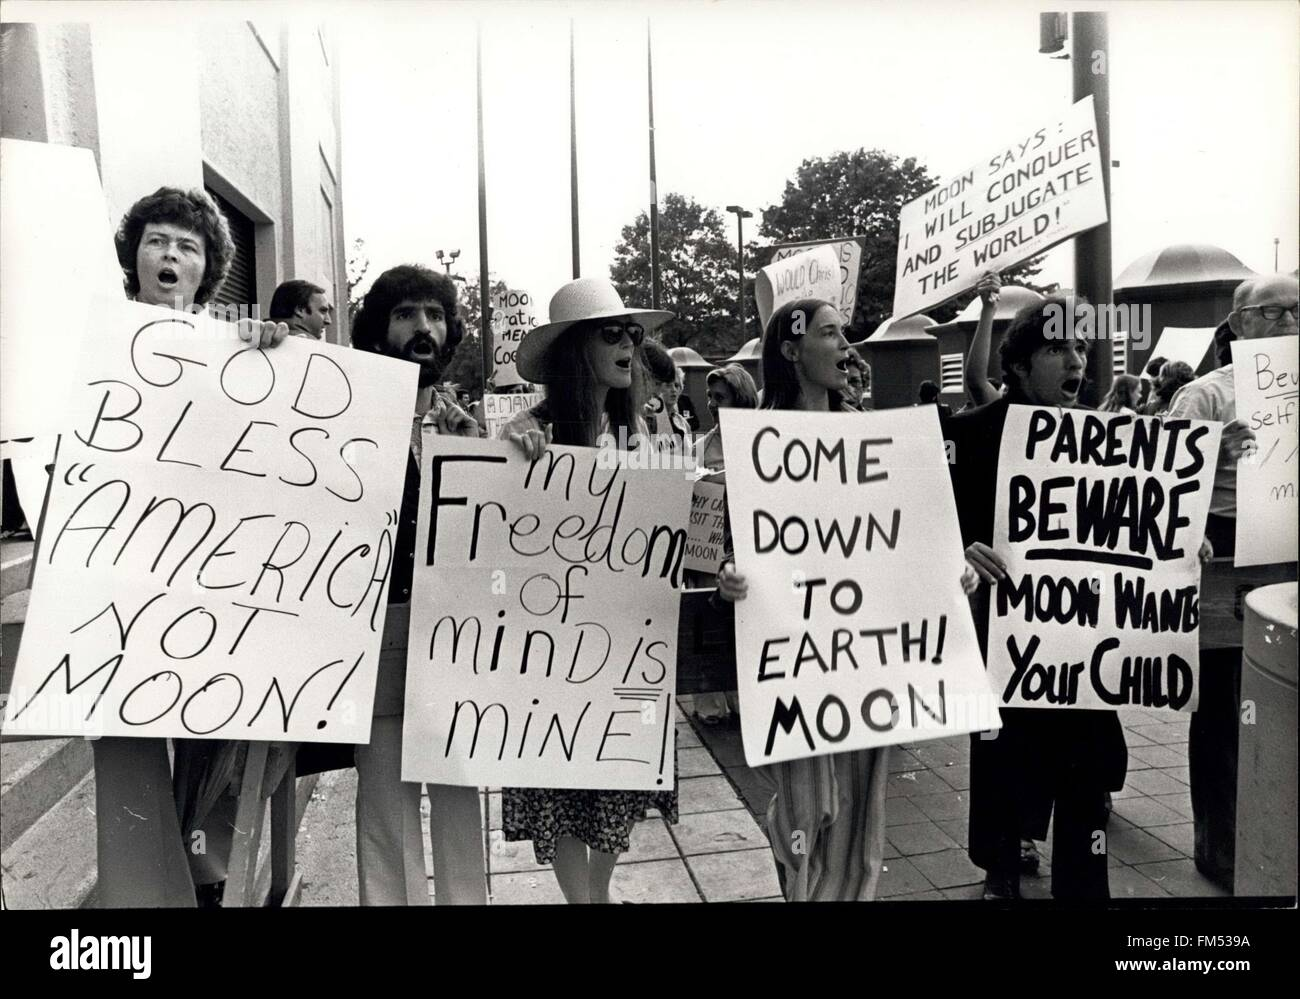 1982 - Cult Moonies © Keystone Pictures USA/ZUMAPRESS.com/Alamy Live News Stock Photo